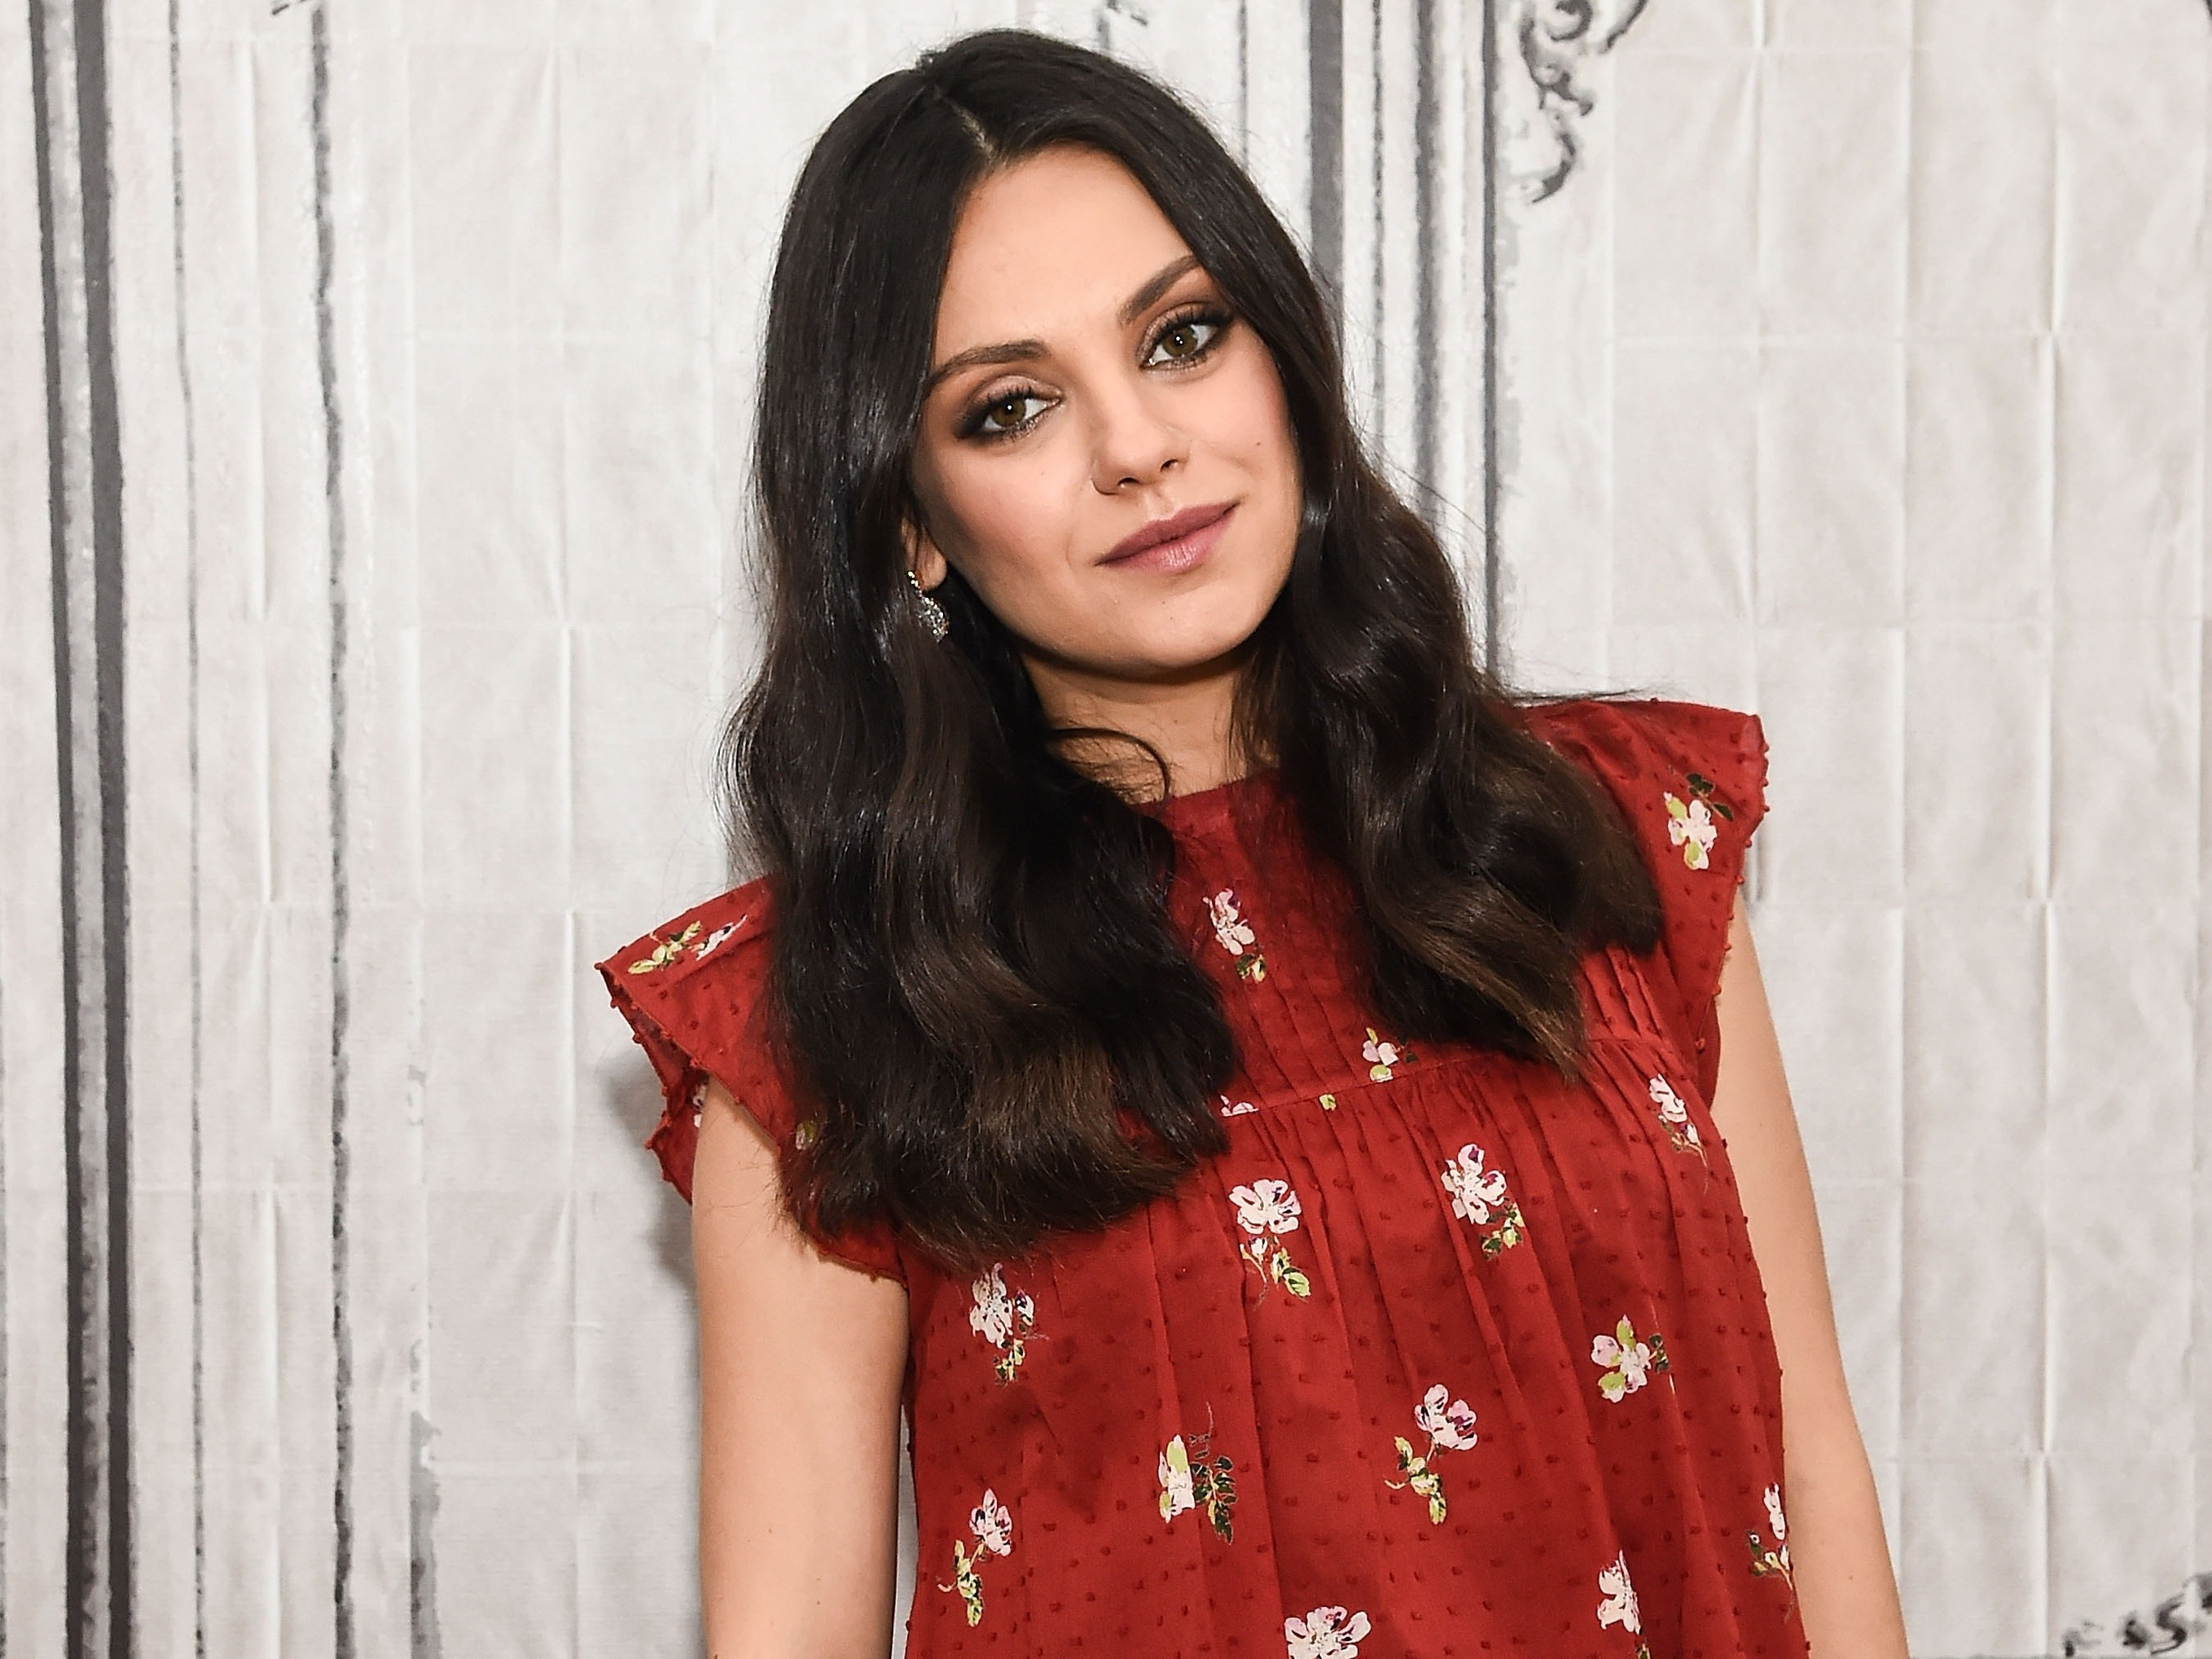 Mila Kunis Got A Chic, Angled Bob Haircut: See Photos – Allure Pertaining To Mila Kunis Short Hairstyles (View 9 of 25)